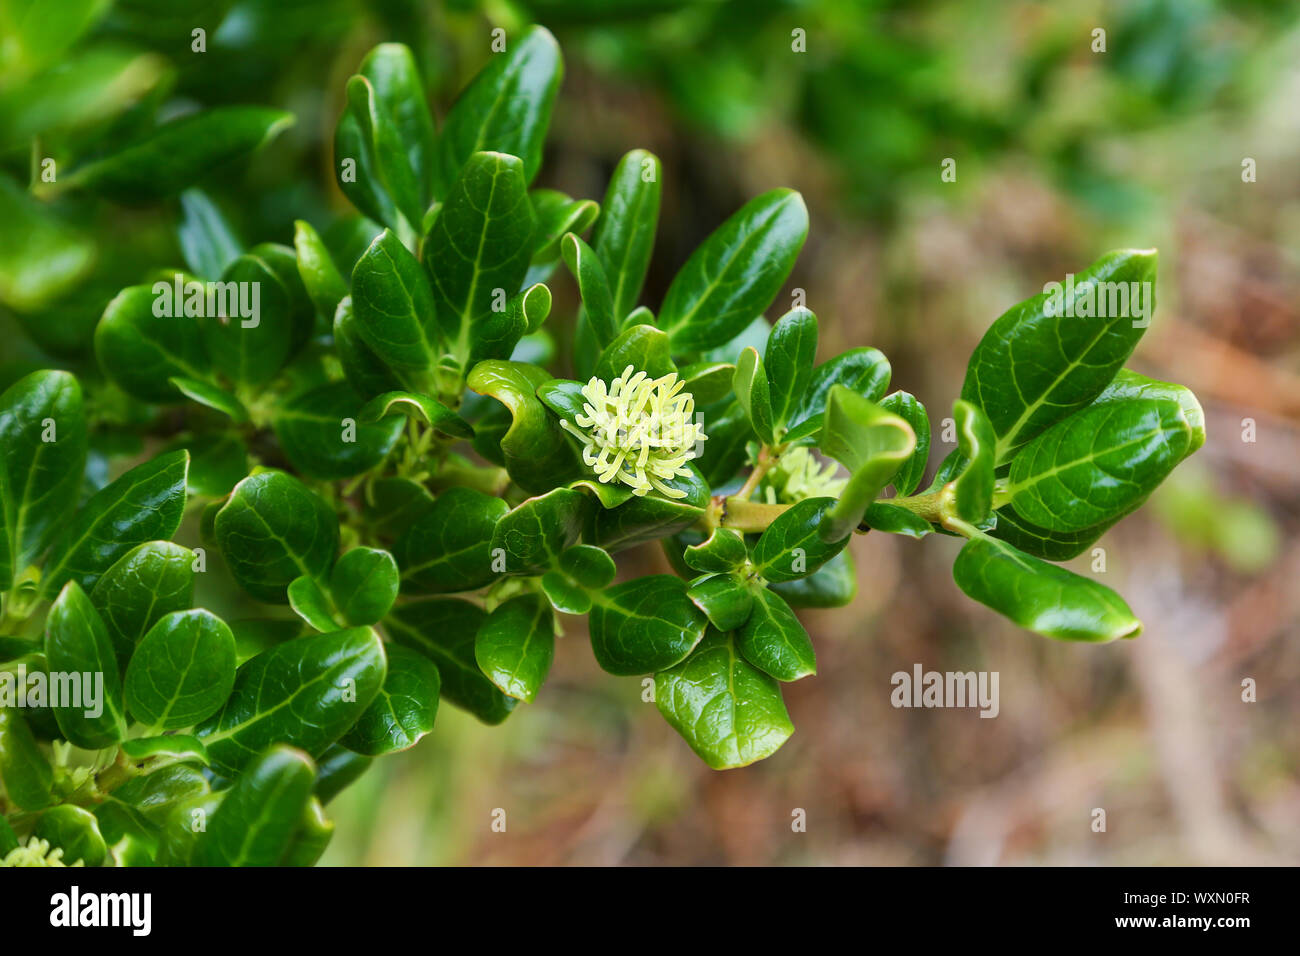 an-unknow-plant-growing-on-st-agnes-island-isles-of-scilly-cornwall-england-uk-WXN0FR.jpg